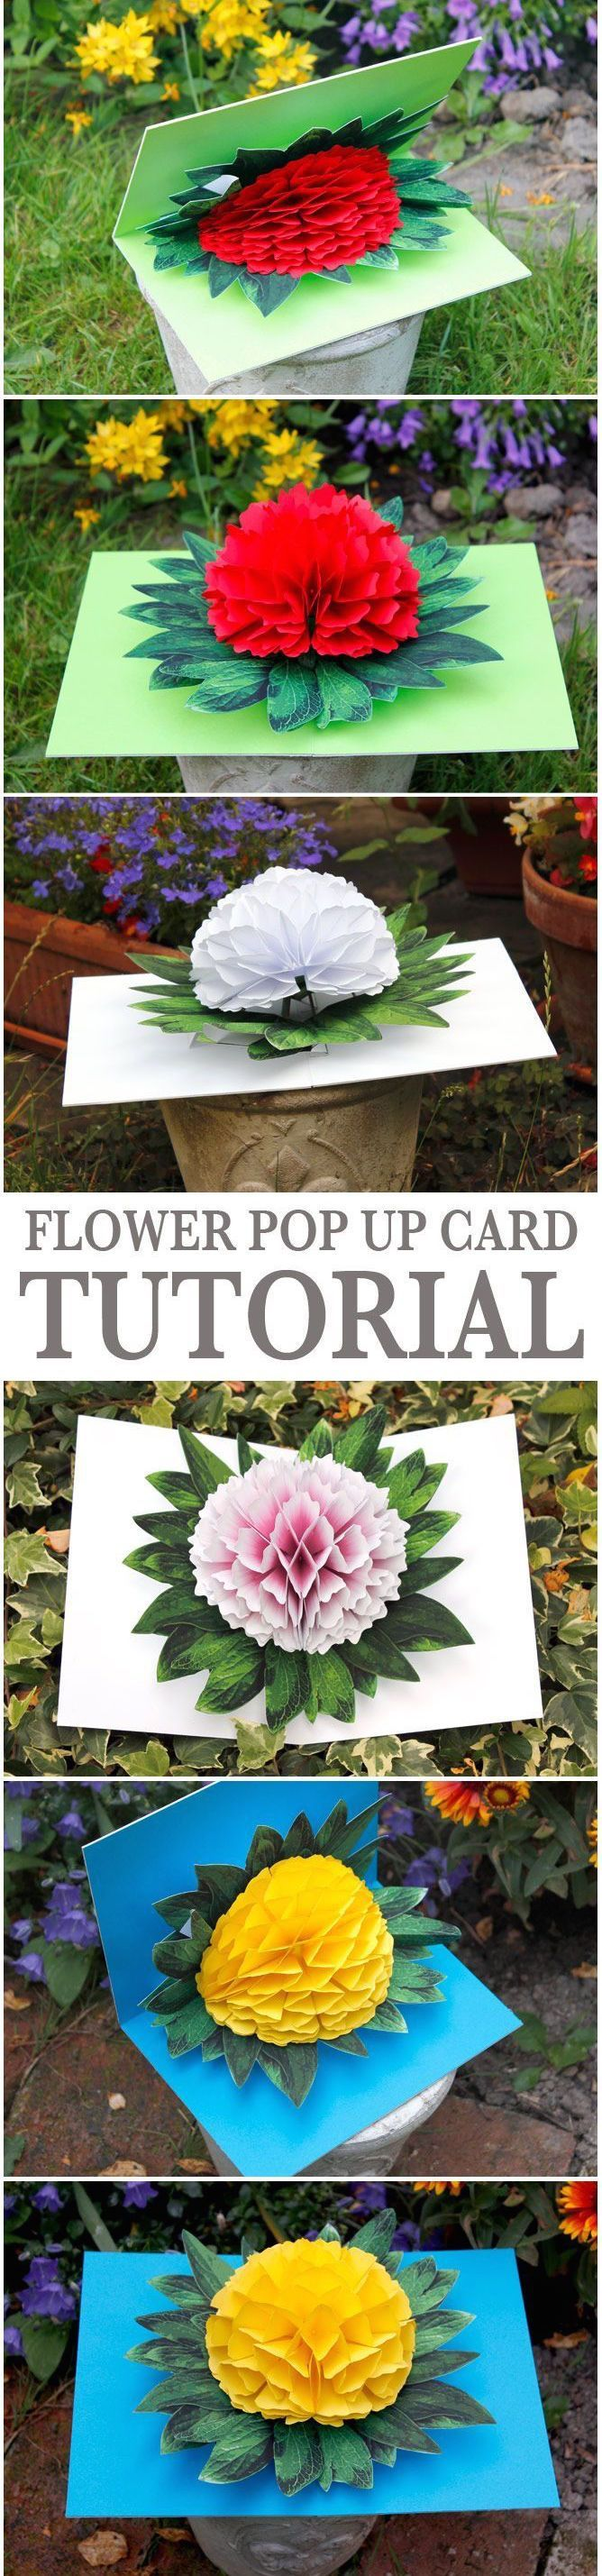 best craftspaper flowers images on pinterest paper flowers